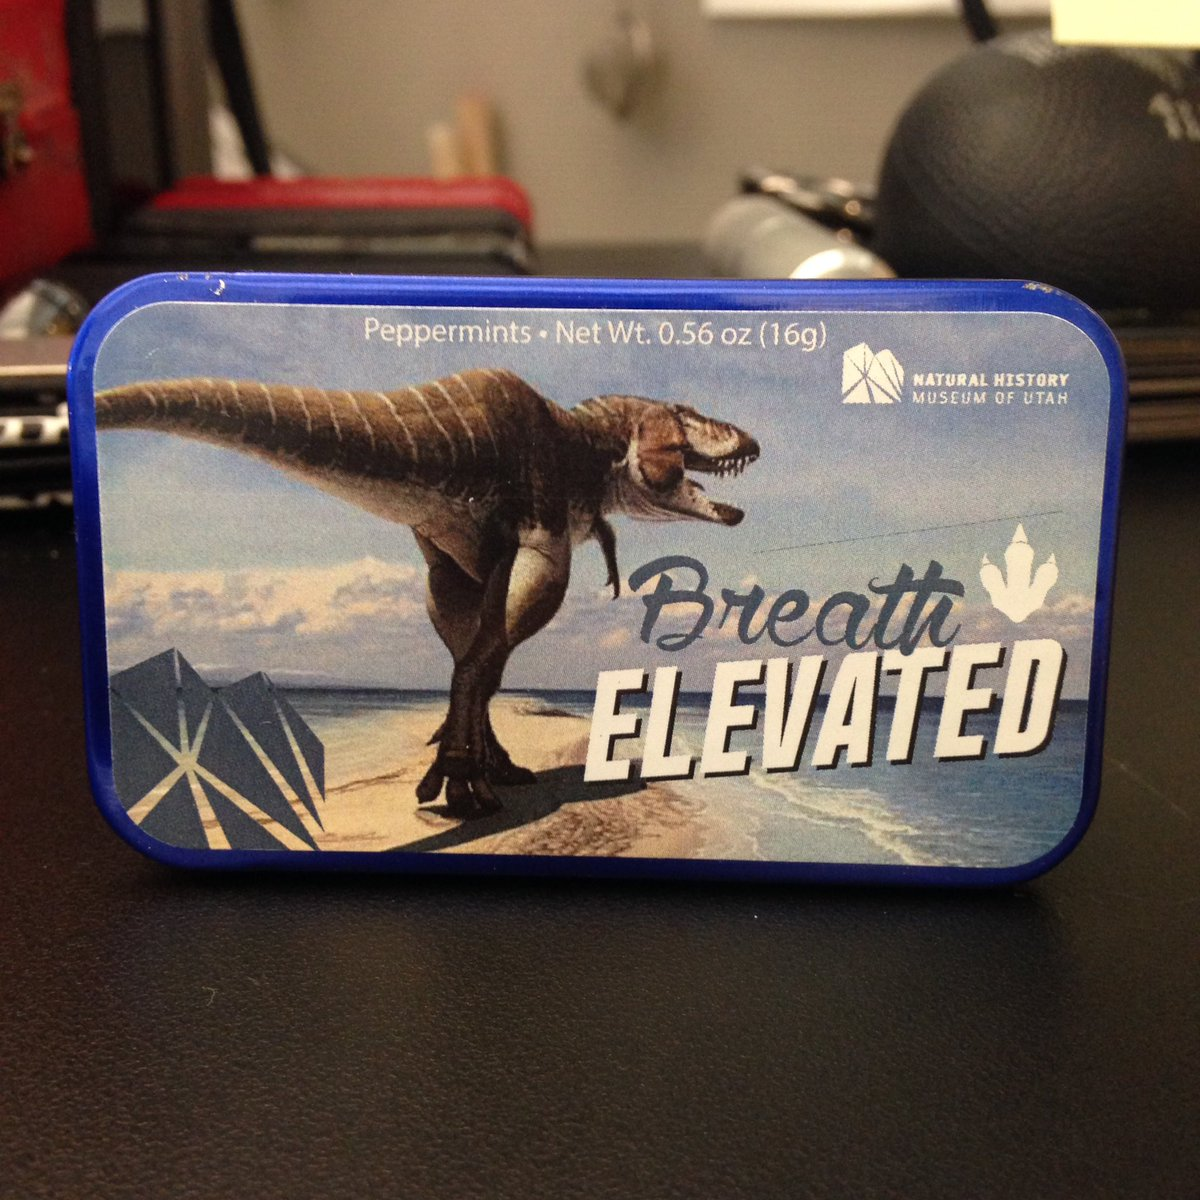 Buy this just for the Lythronax?  No, why would I do that? *nervouslaugh* @nhmu #science #paleontology #usofscience #lythronax  #scicomm<br>http://pic.twitter.com/P7JKxbzirj